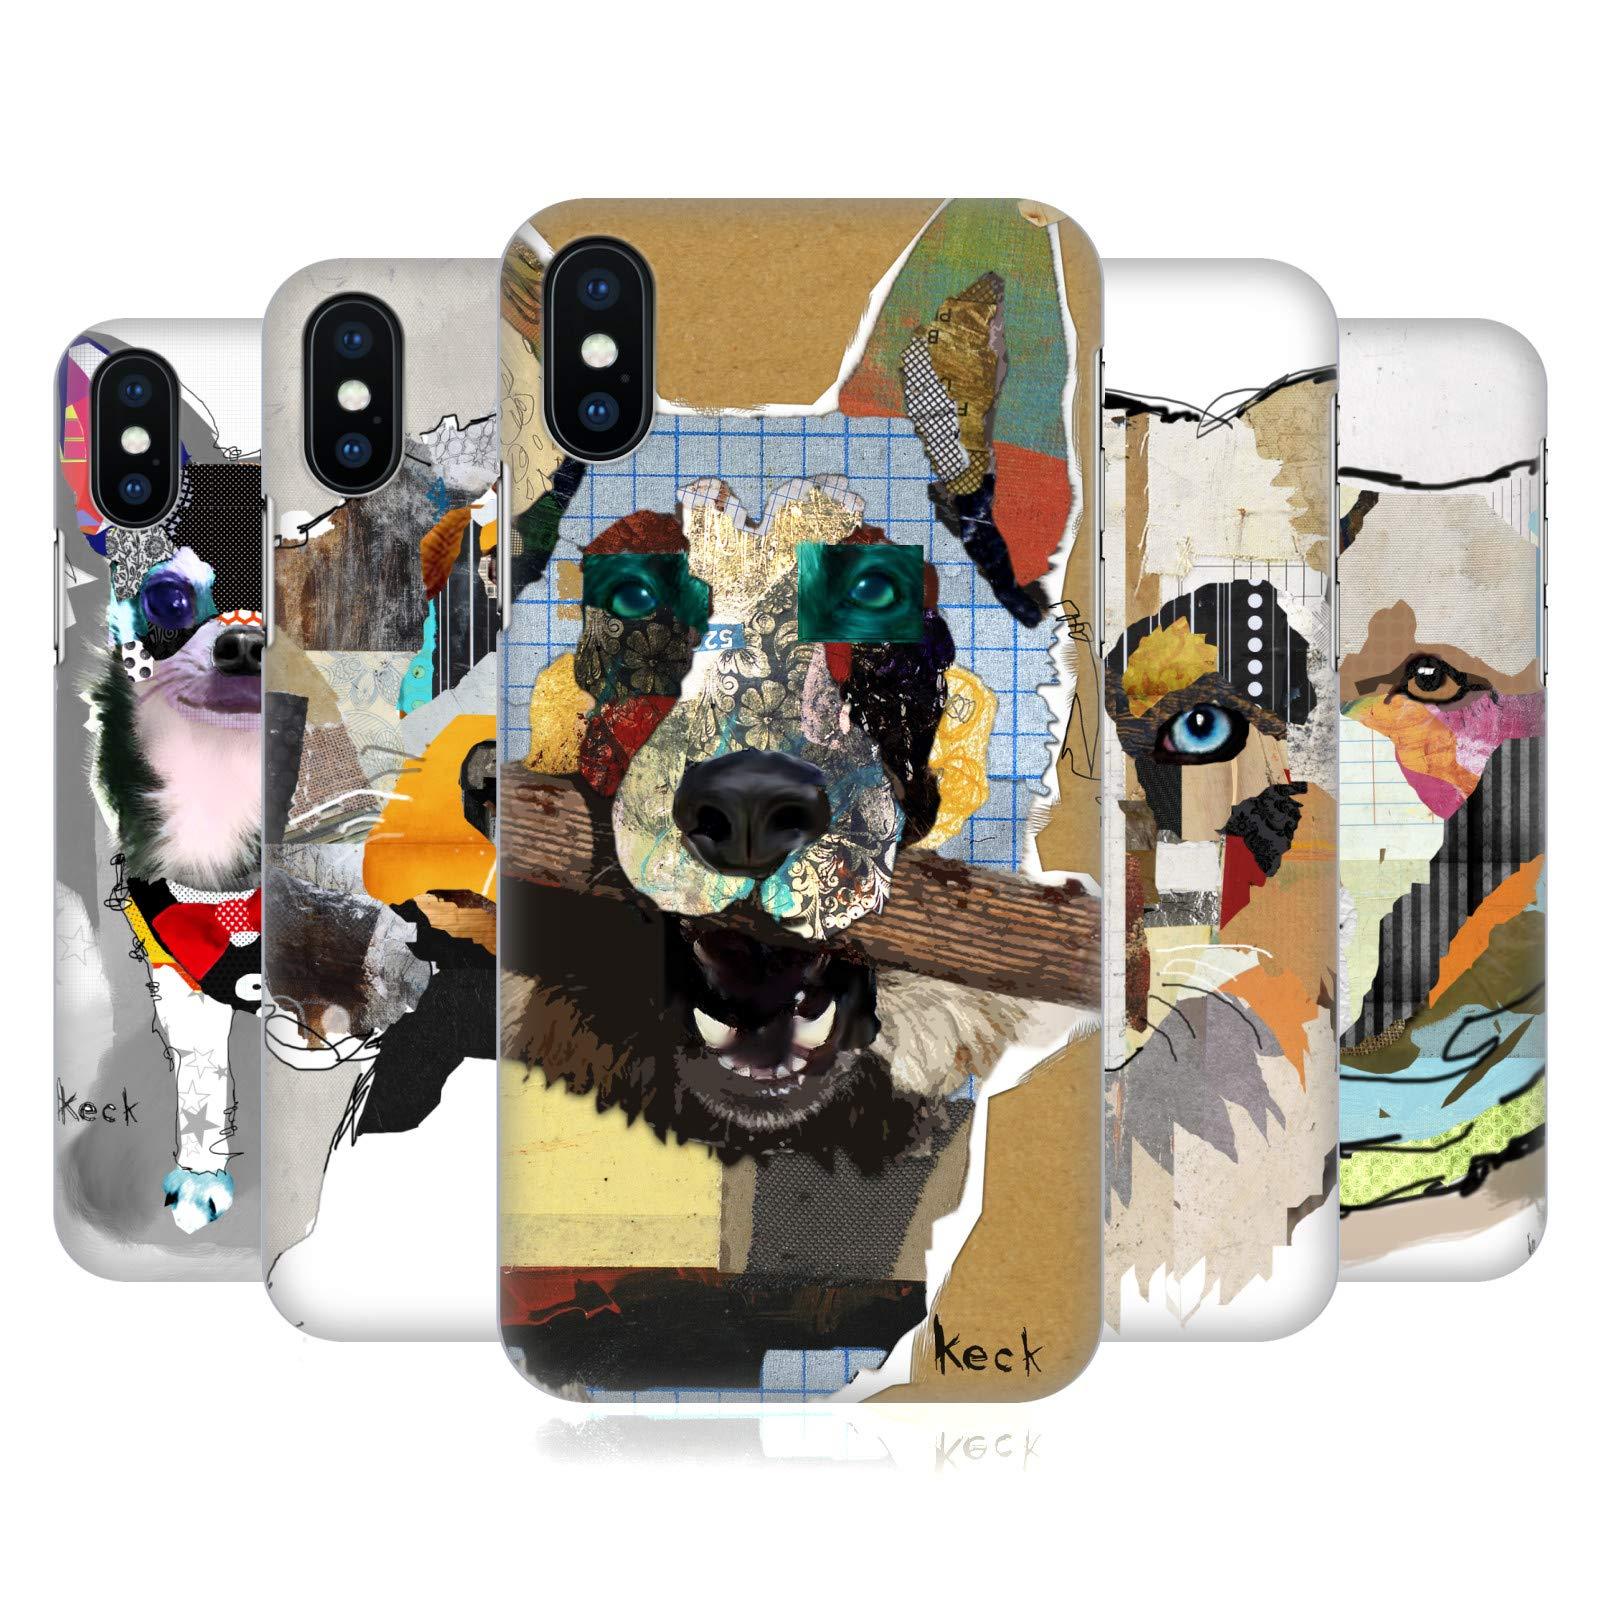 Official Michel Keck Australian Shepherd Dogs 3 Hard Back Case Compatible for Apple iPhone 6 / iPhone 6s